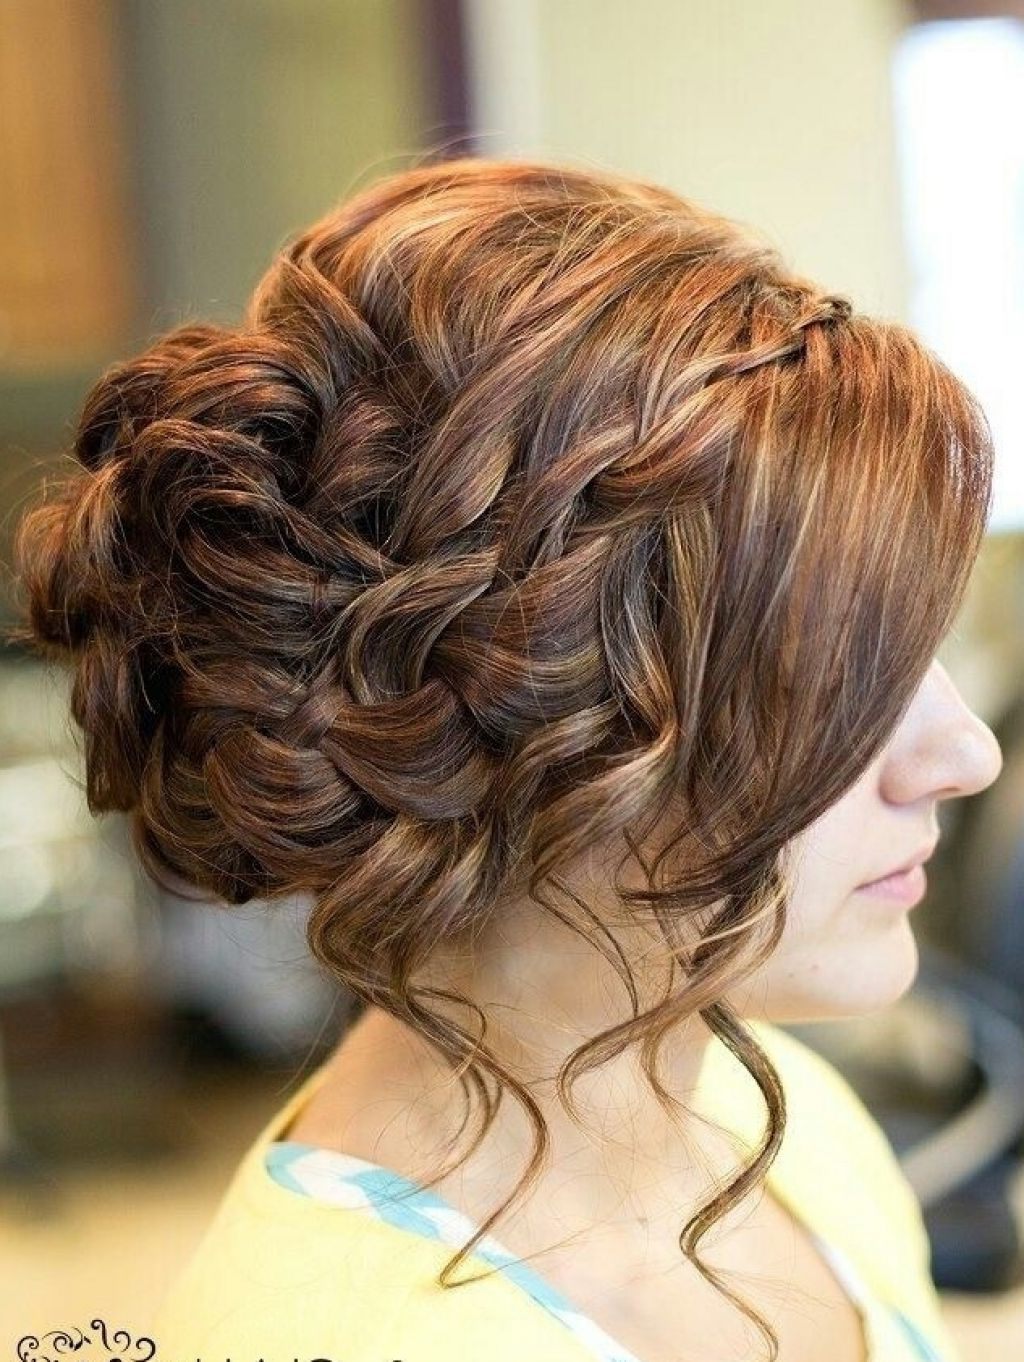 14 Prom Hairstyles For Long Hair That Are Simply Adorable Intended For Current Classic Prom Updos With Thick Accent Braid (View 12 of 20)